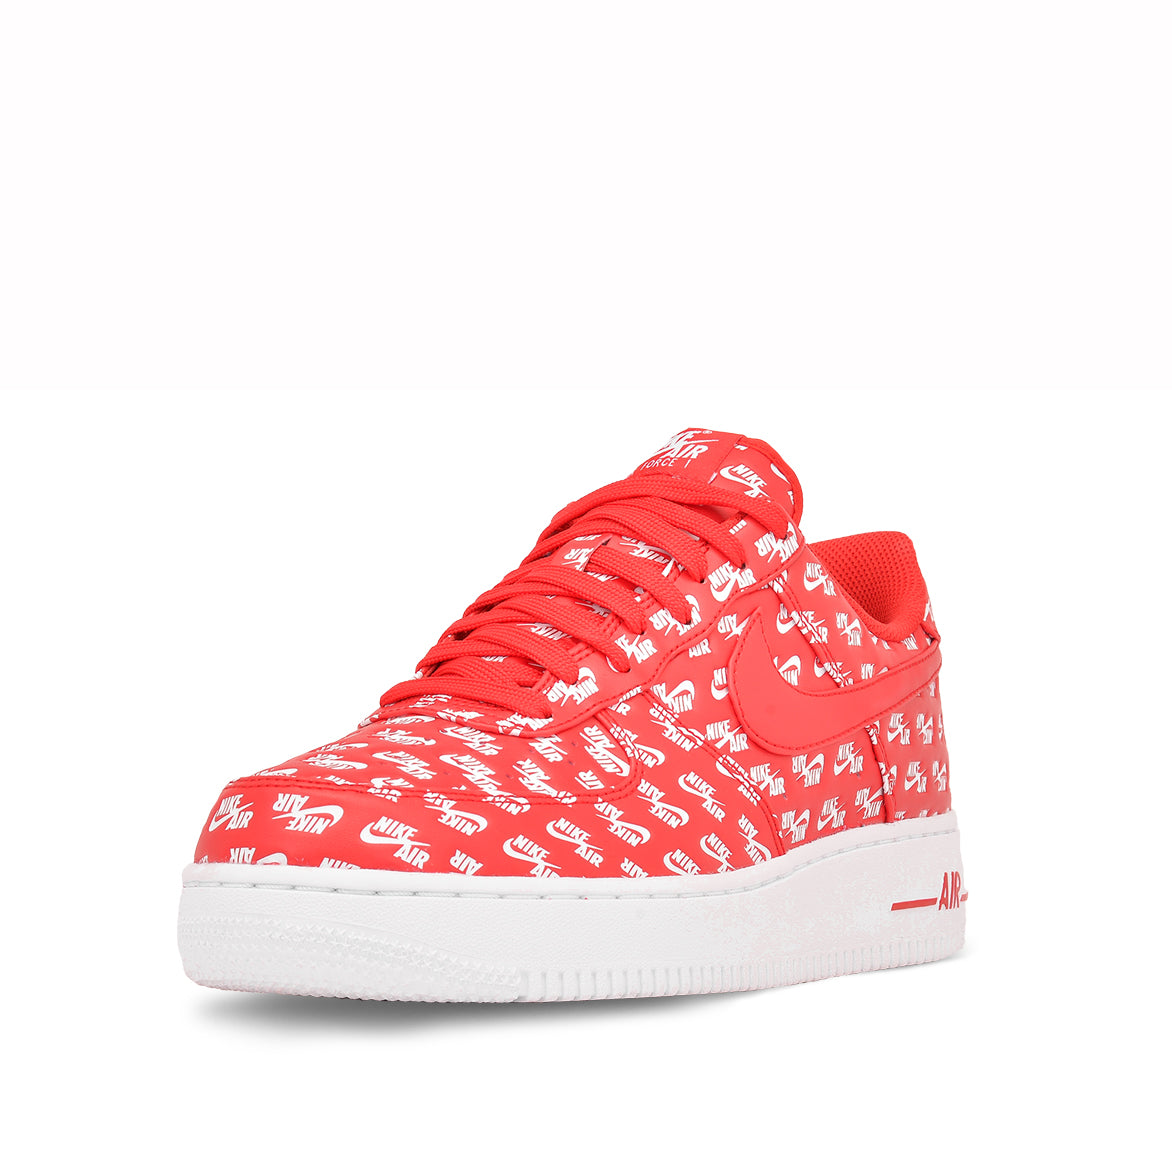 "AIR FORCE 1 LOW ""ALL OVER LOGO"" PACK - UNIVERSITY RED"